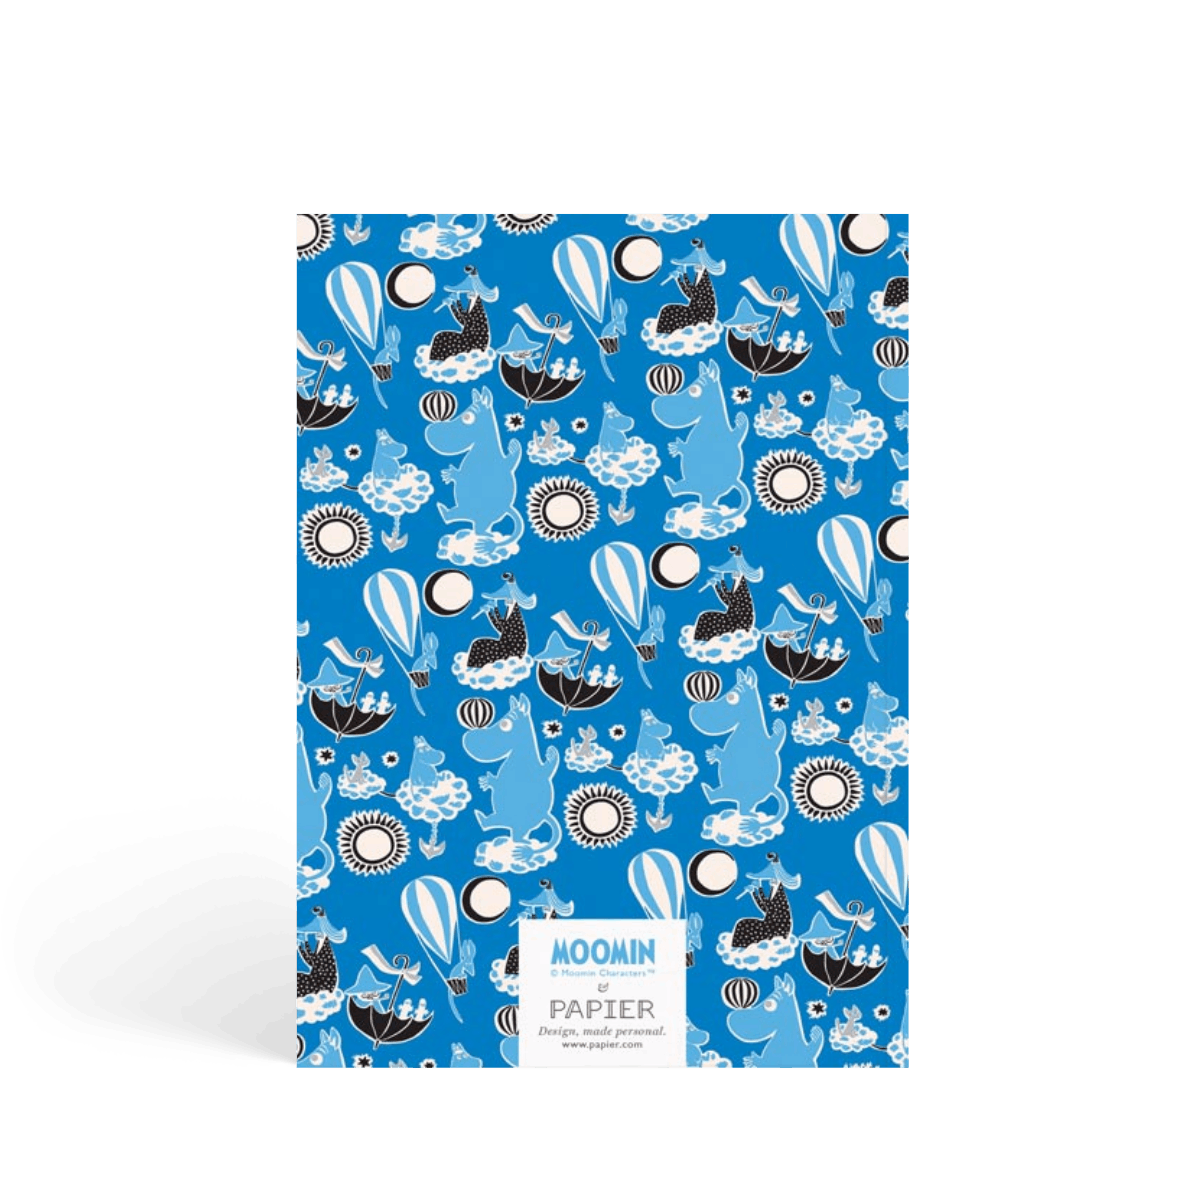 Https%3a%2f%2fwww.papier.com%2fproduct image%2f22850%2f5%2fmoomin dream 5739 arriere 1495186658.png?ixlib=rb 1.1